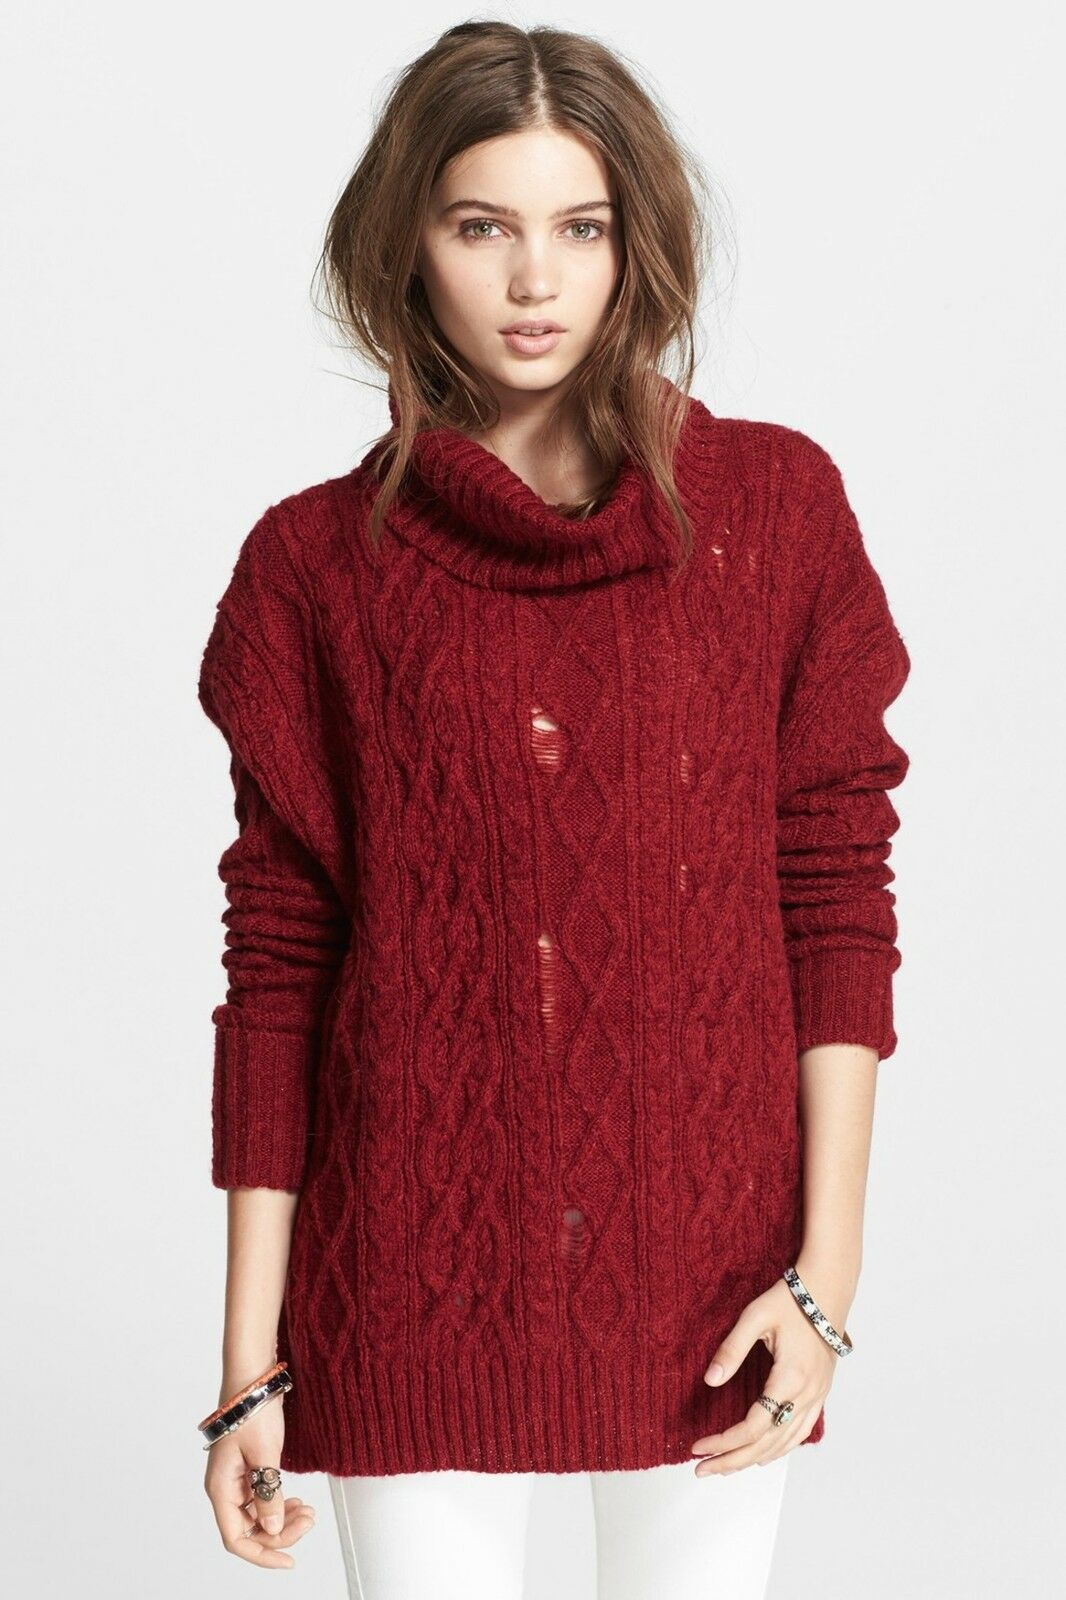 NWT Free People Complex in Red Destroyed Rip Cable Knit Cowl Sweater XS